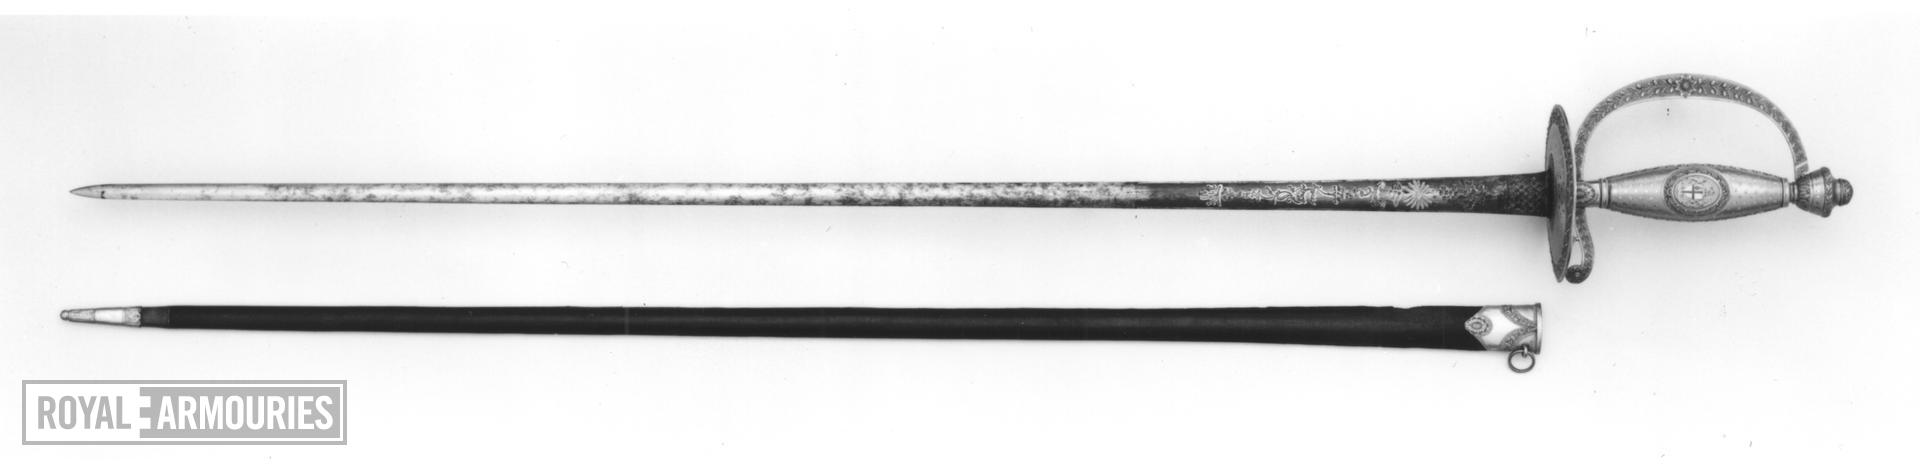 Sword and scabbard Presentation small-sword and scabbard. Presented to Lieut. Popham, RN, by the H E I C, 1786.